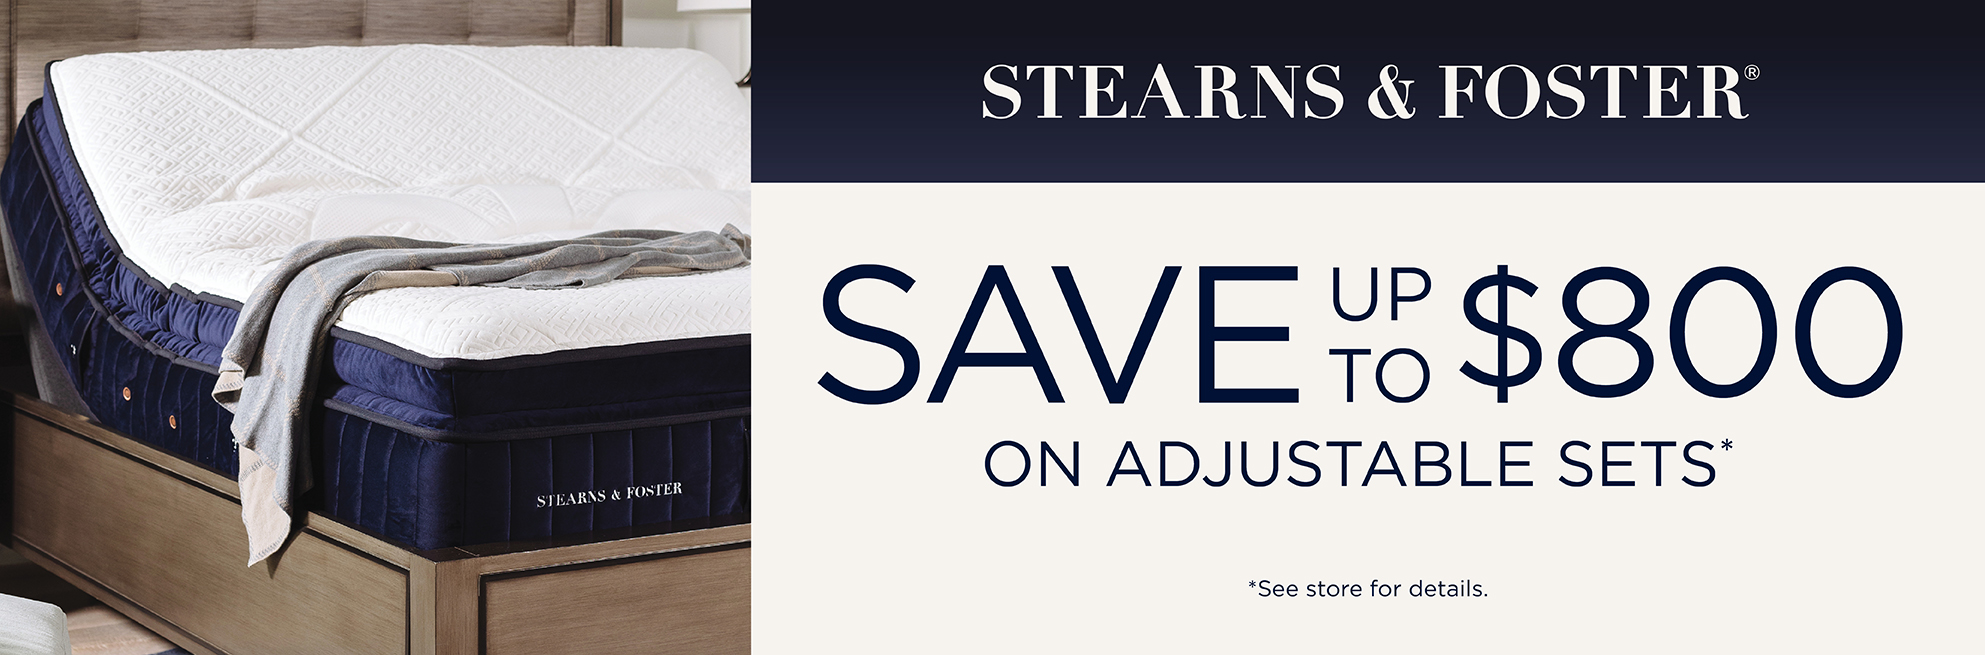 Stearns & Foster Event